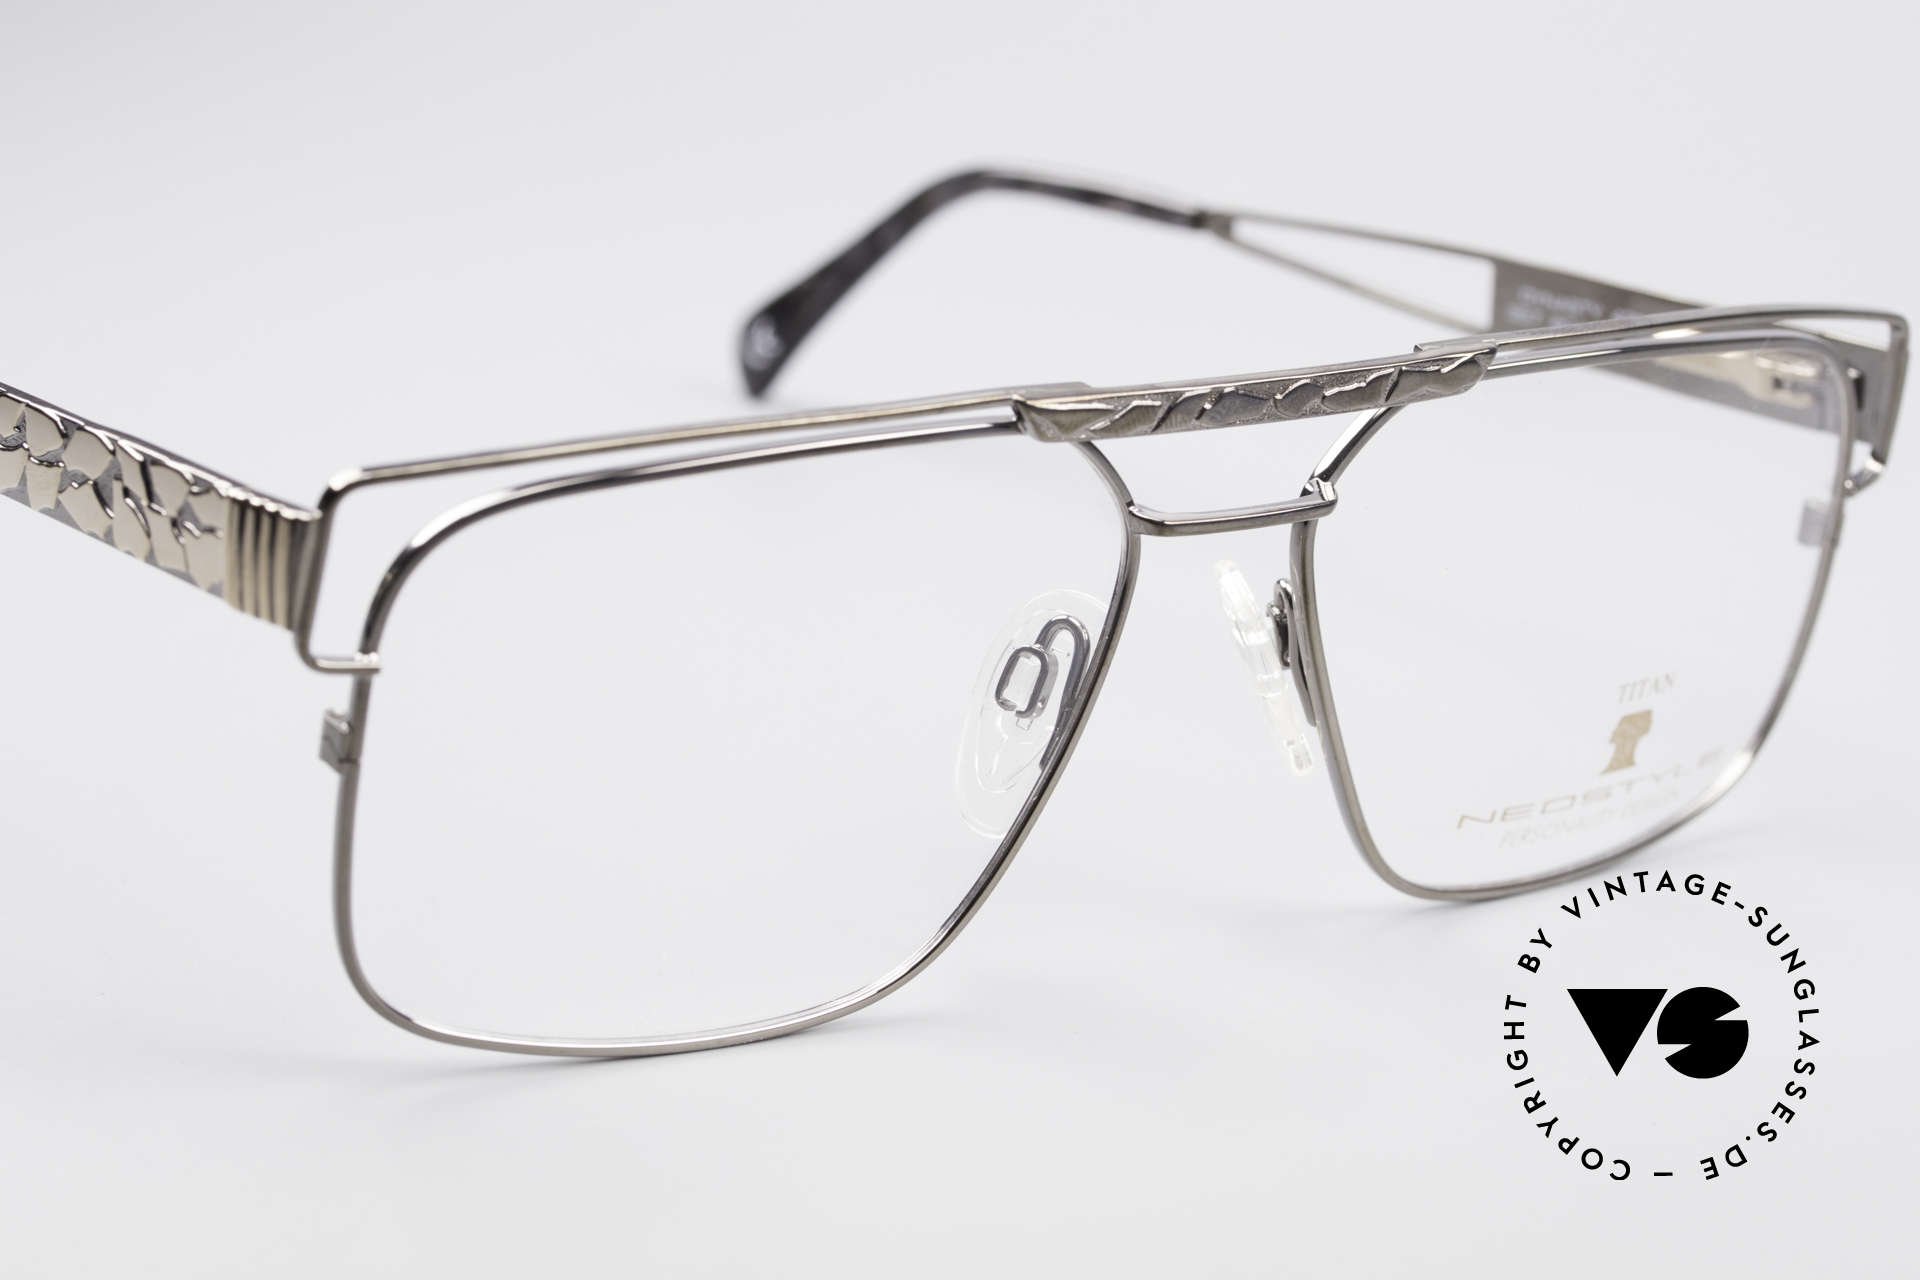 Neostyle Dynasty 430 80's Titanium Eyeglasses Men, NO RETRO glasses, just a stylish old ORIGINAL, Made for Men